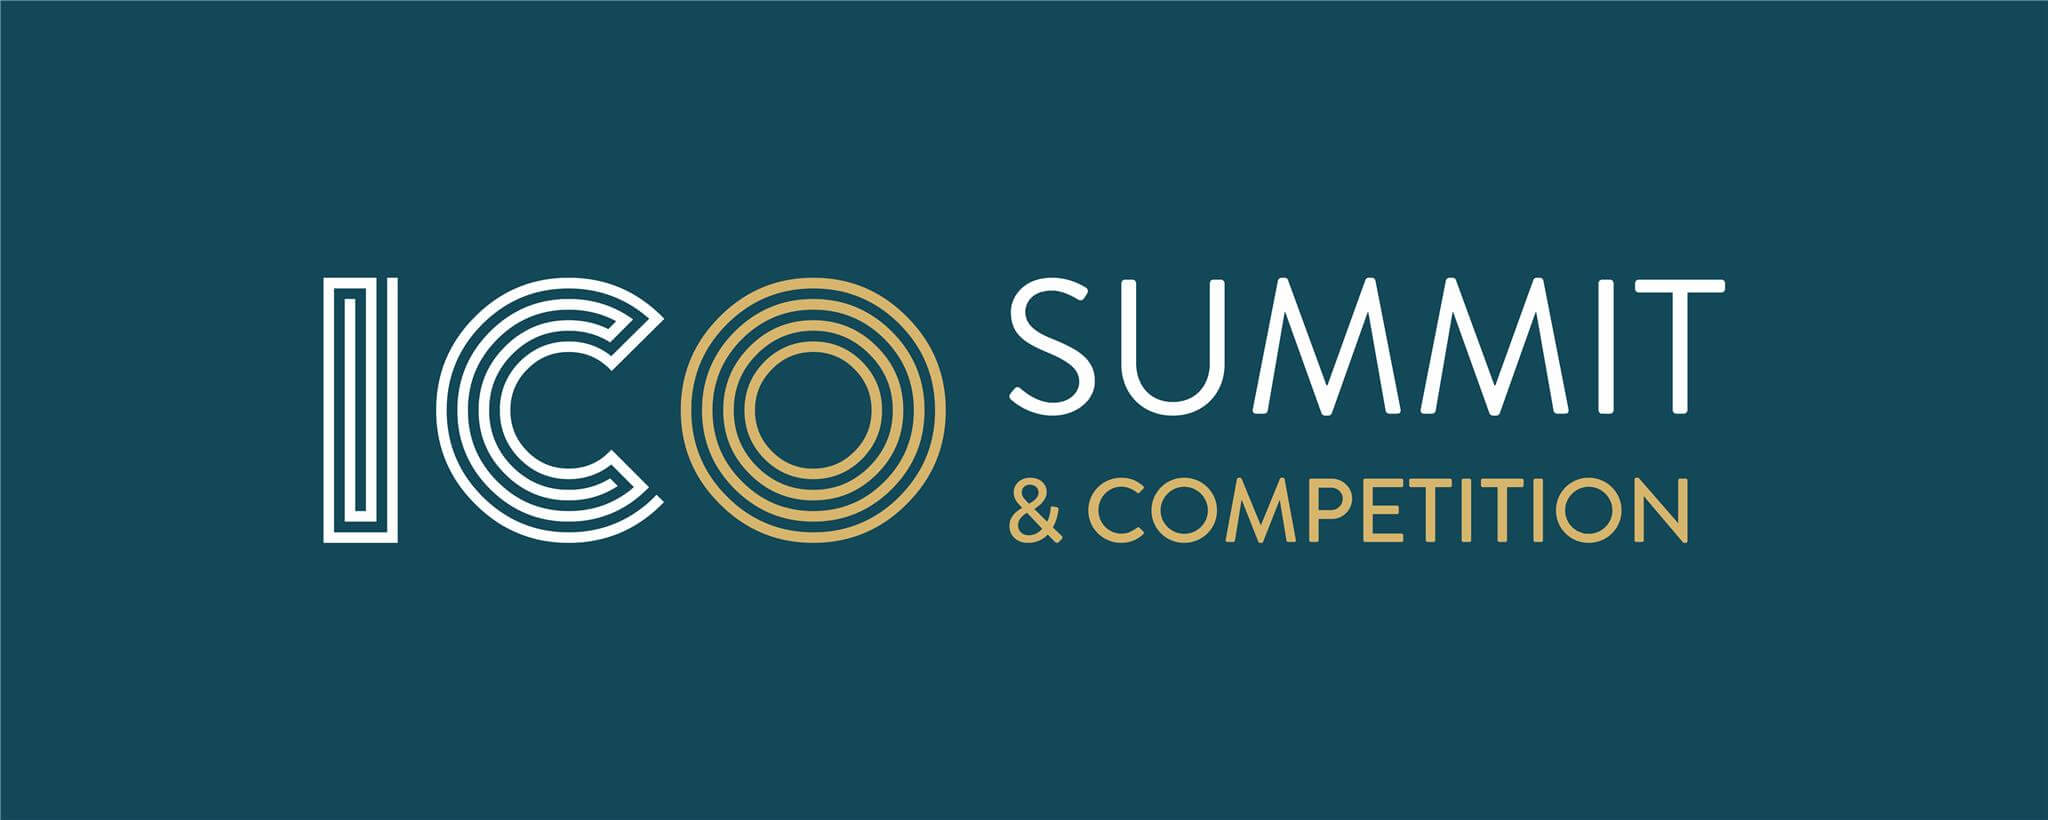 ICO Summit & Competition